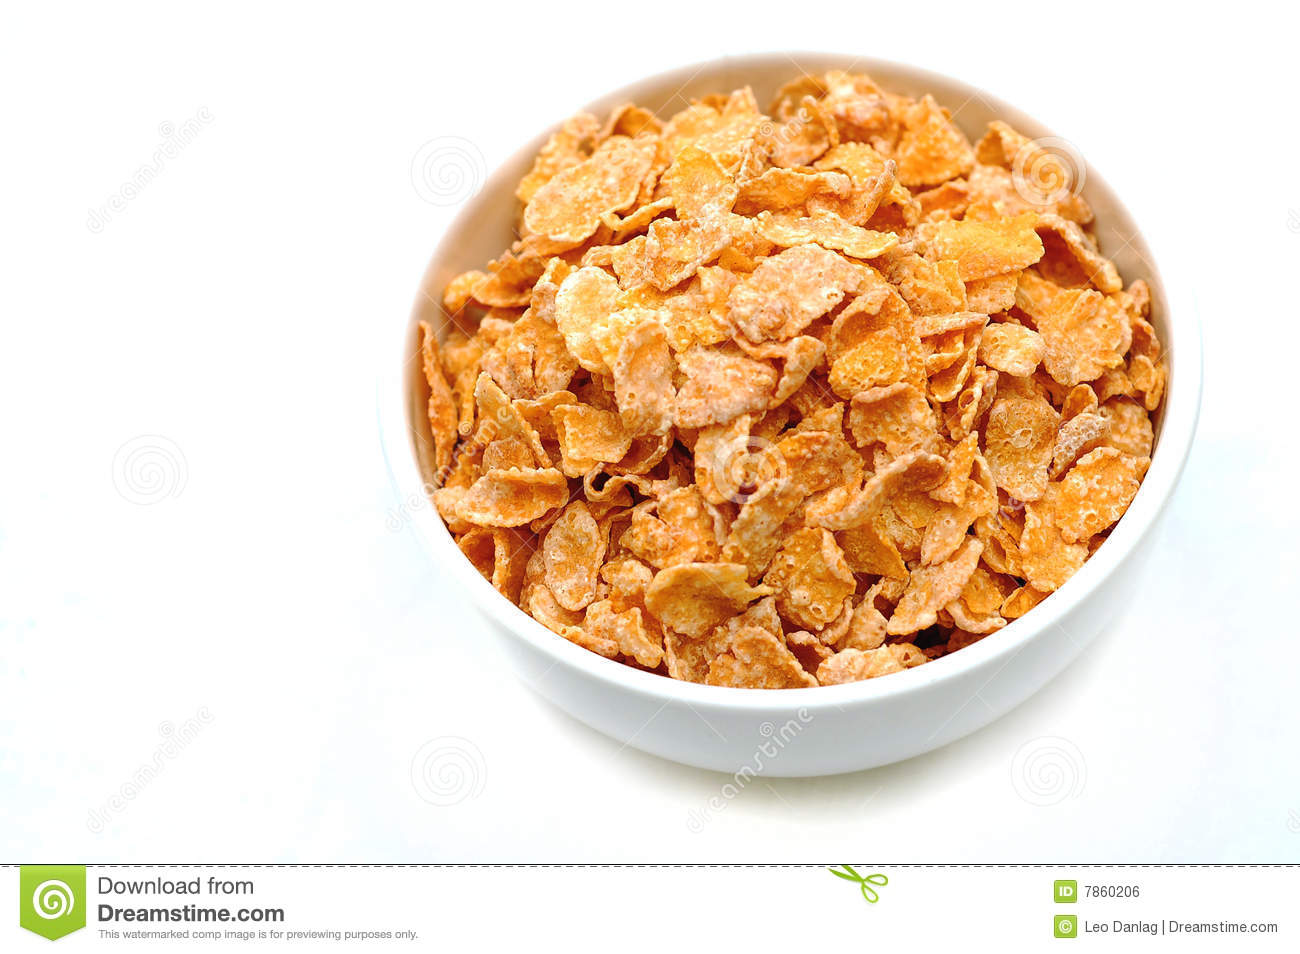 File Cereal con yogur as well Breakfast Of Ch ions moreover General Mills Cereal Box Price Guide besides Cereal Eats Mexican Vs American Cereal Showdown Fruit Loops Frosted Flaes additionally How To Pour Cereal. on cerel in